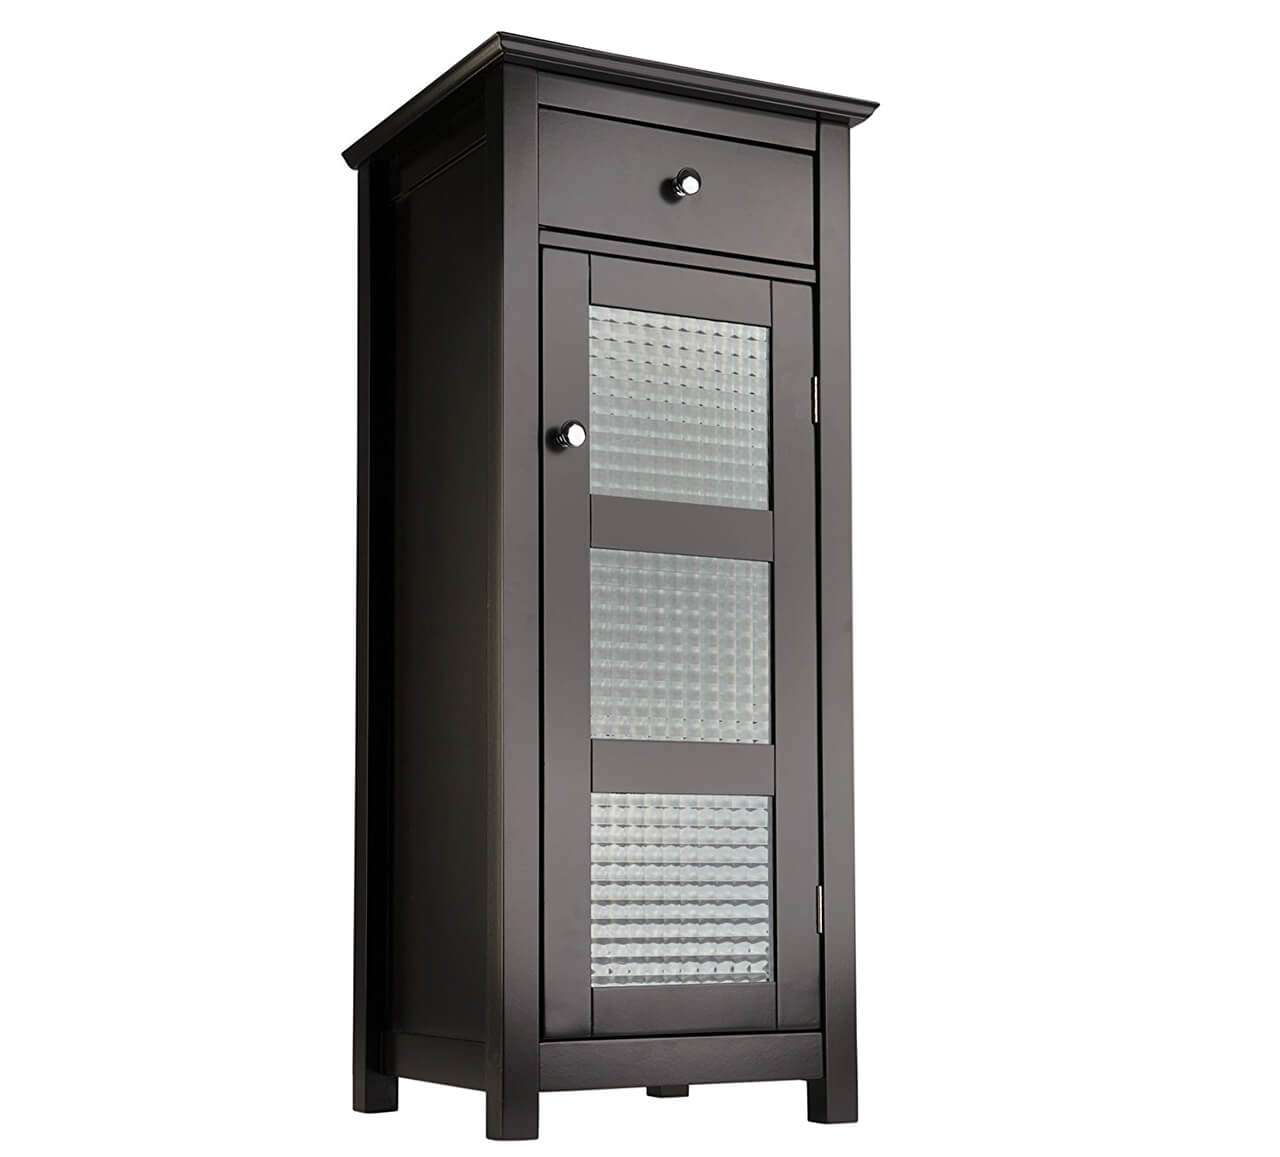 Bathroom floor storage cabinet - Elegant Home Fashions Chesterfield Collection Floor Cabinet